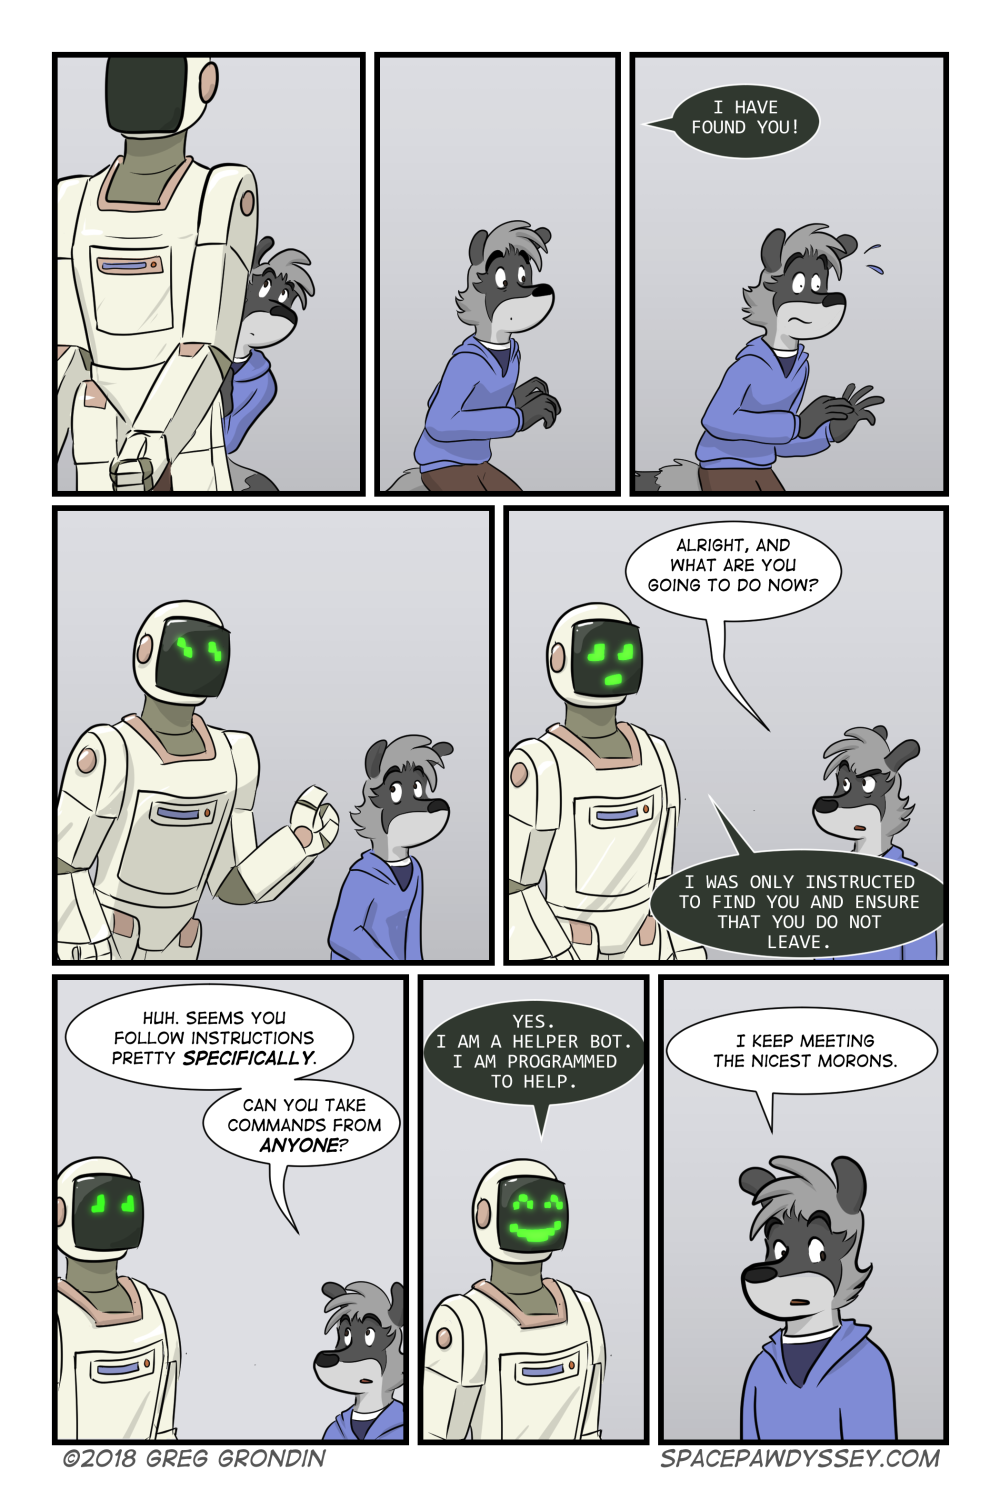 Space Pawdyssey #179